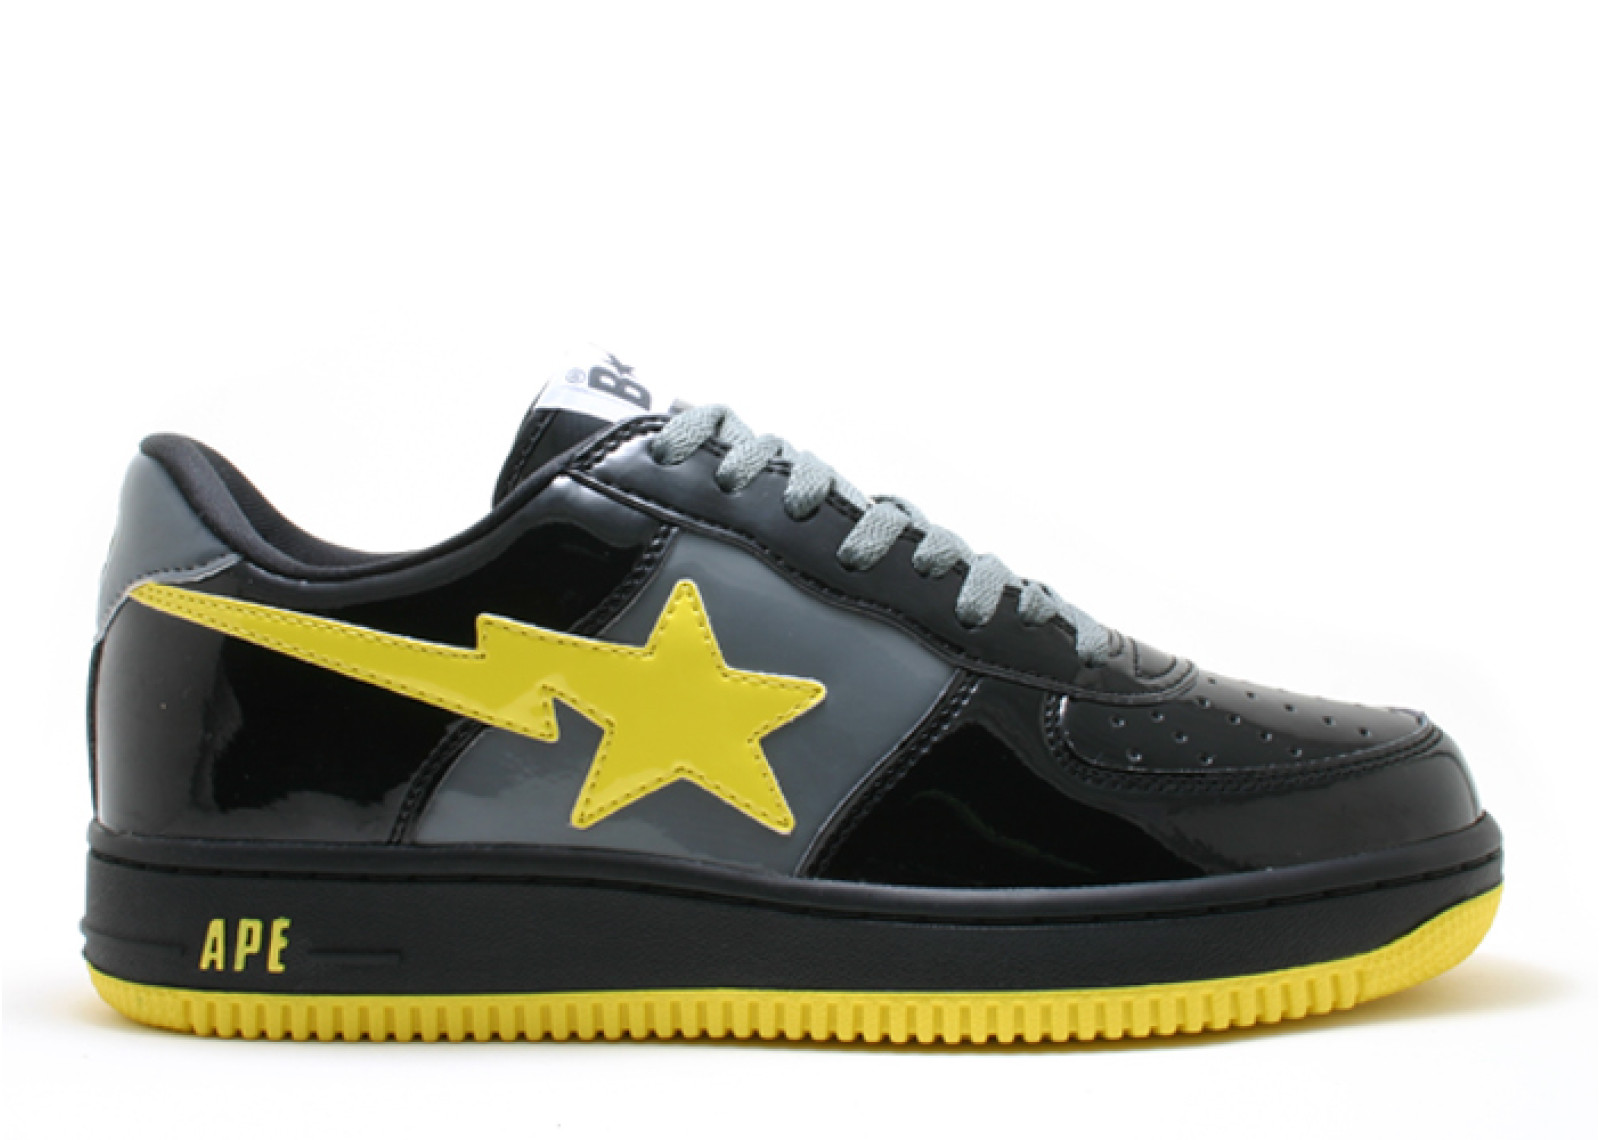 Bathing Ape Shoes for Sale | Bapesta | Buy Bape Shoes